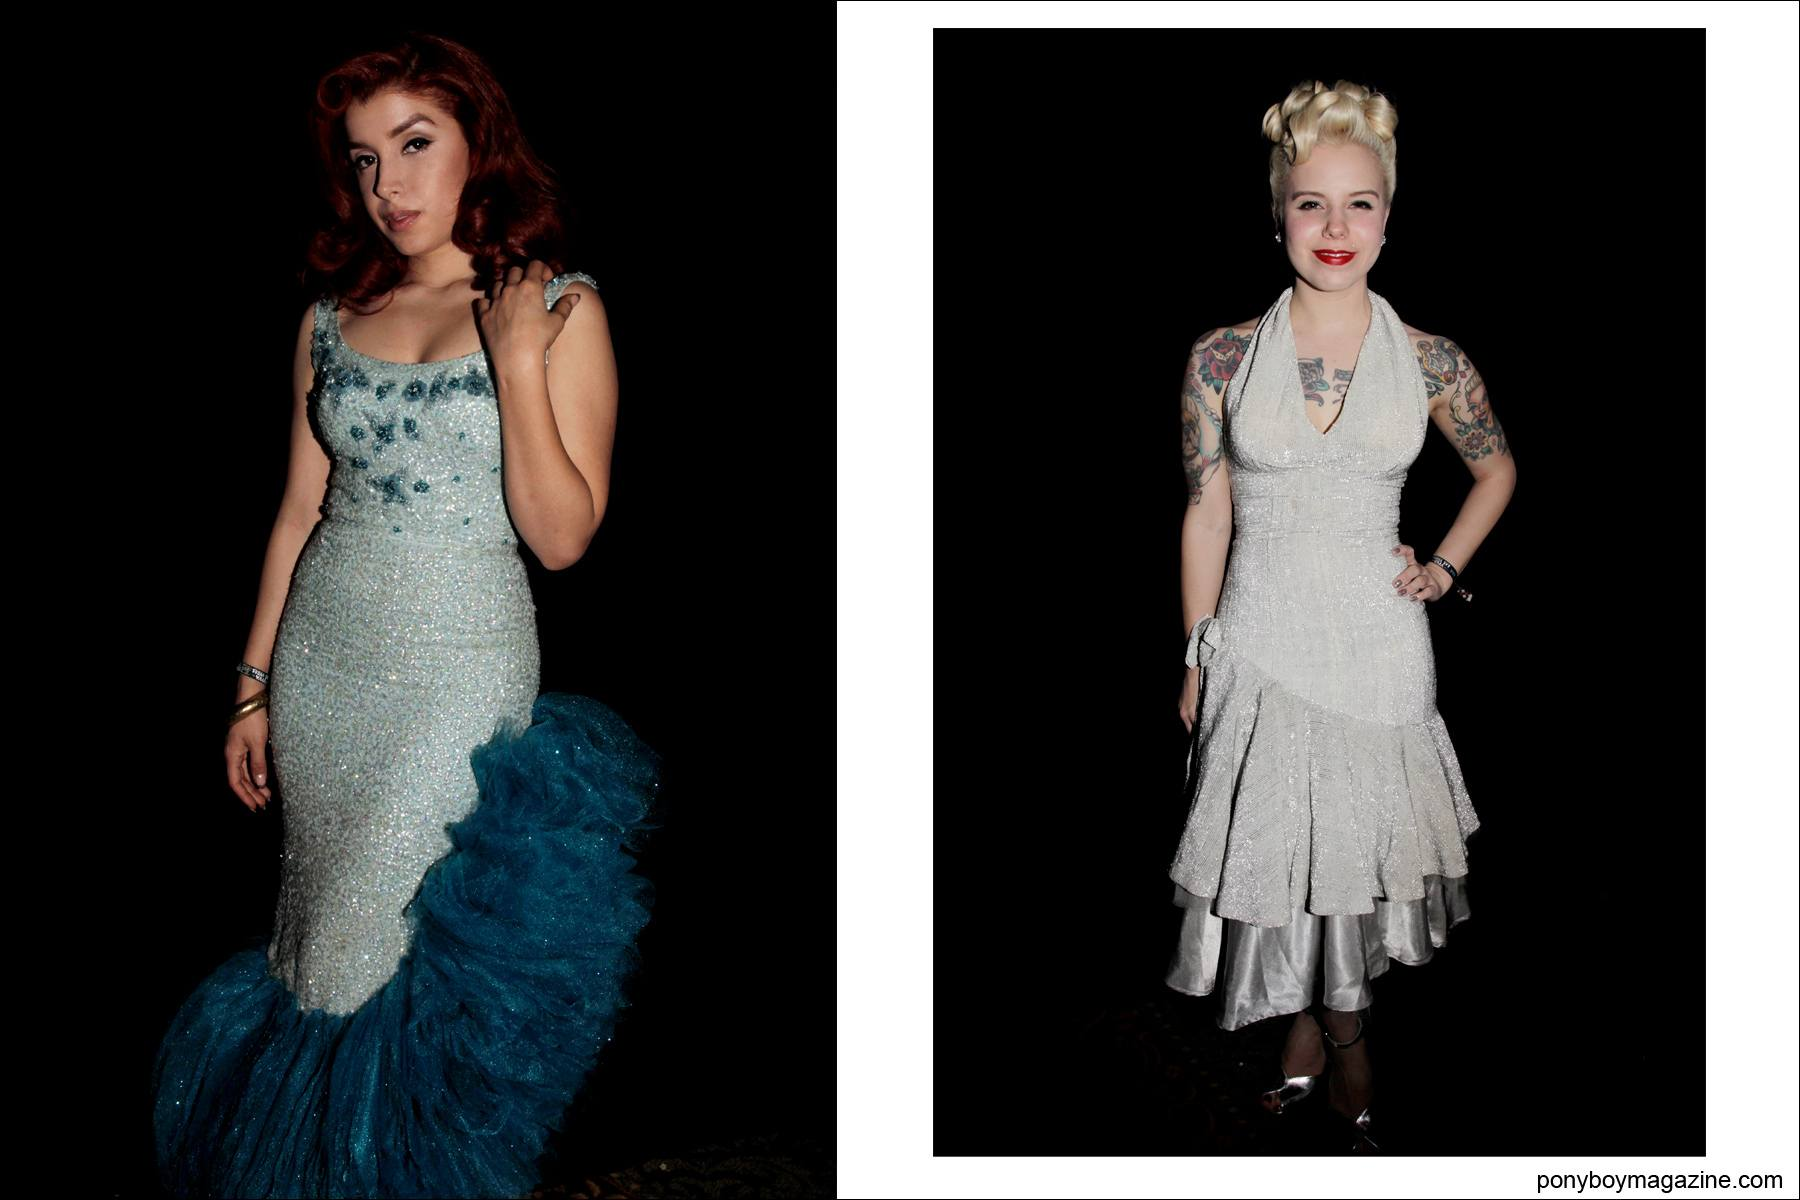 Vintage 1950's women's evening dresses photographed at Tom Ingram's Viva Las Vegas rockabilly weekender. Images by Ponyboy Magazine photographer Alexander Thompson.